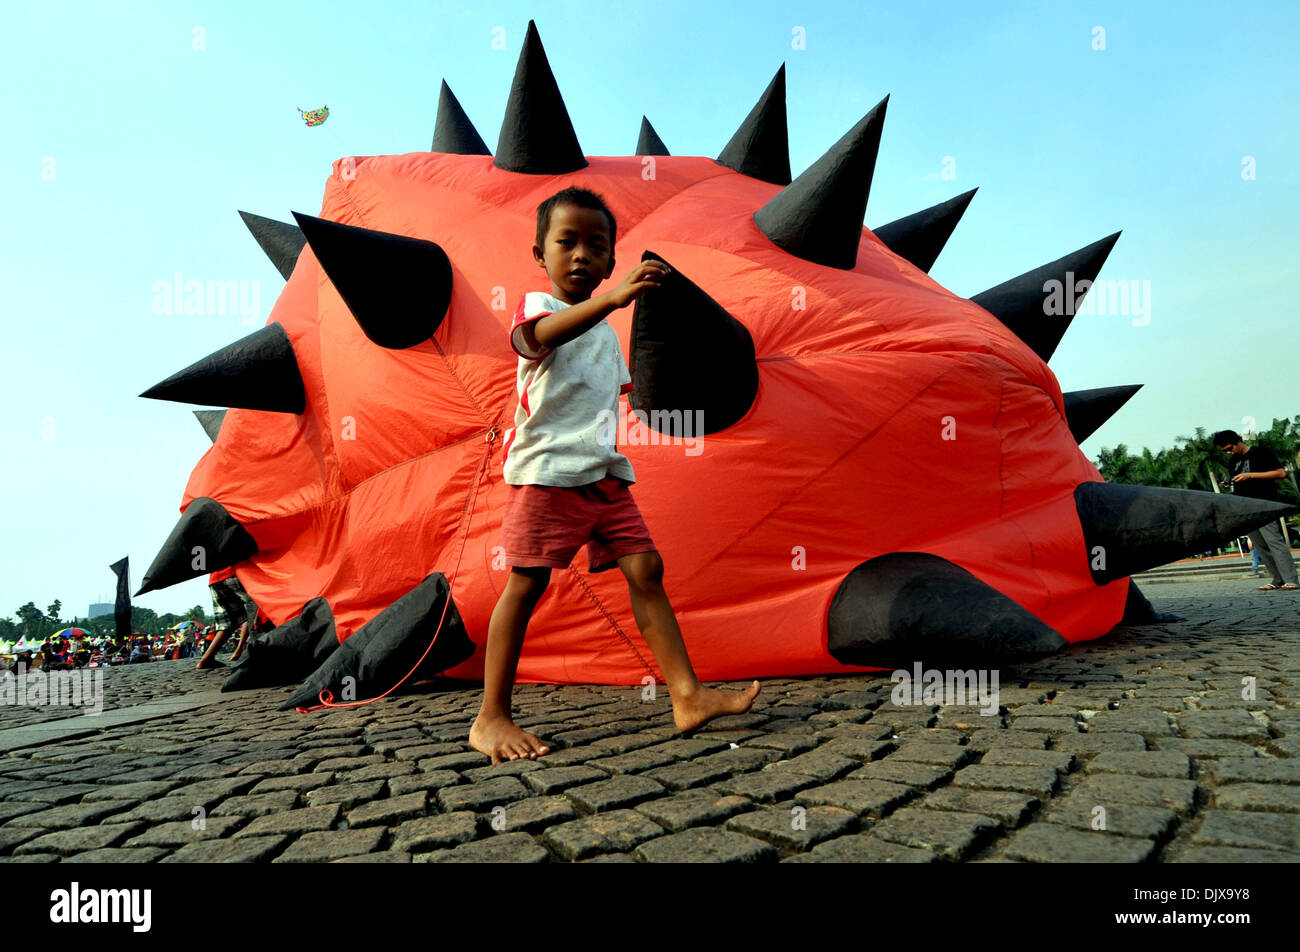 Jakarta, Indonesia. 1st Dec, 2013. A boy walks past a kite during the Jakarta International Kite Festival 2013 in Jakarta, Indonesia, Nov. 30, 2013. The two-day festival opened on Saturday, with the participation of 18 countries and regions. Credit:  Agung Kuncahya B./Xinhua/Alamy Live News Stock Photo